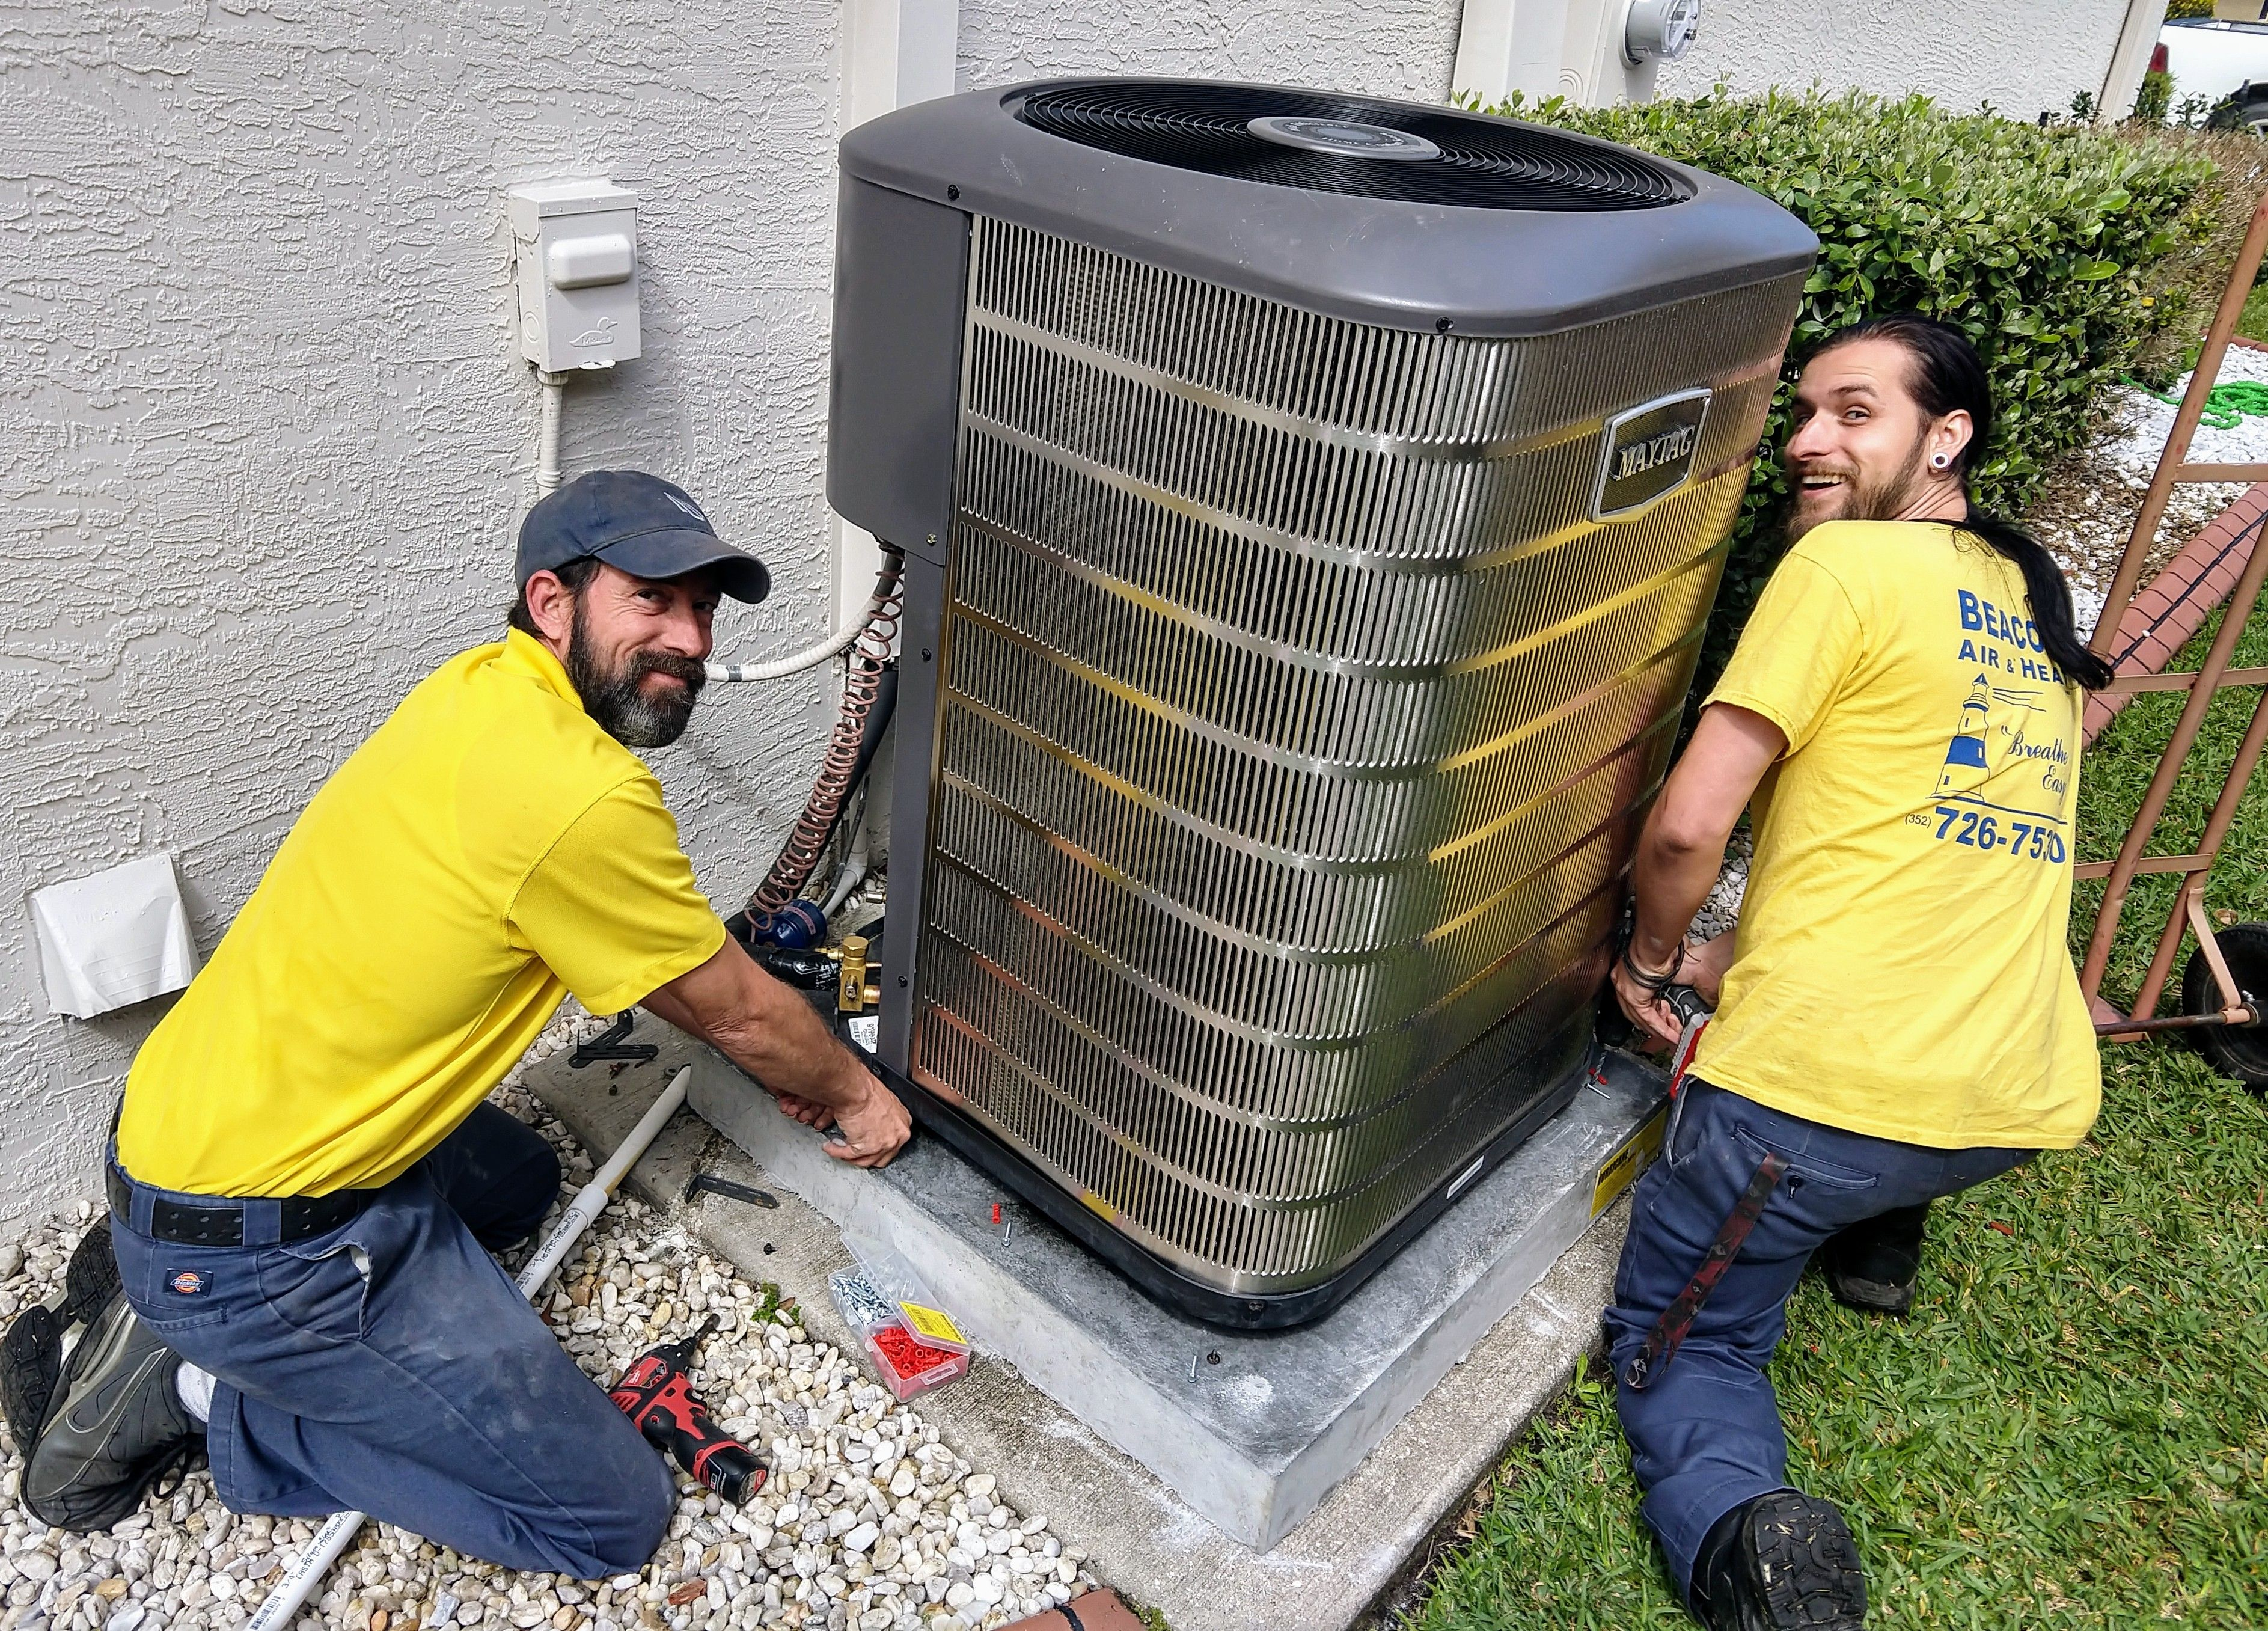 The Beacon Installers Make This Maytag M 1200 Series Air Conditioner Look Good Appliance Store Inverness Maytag